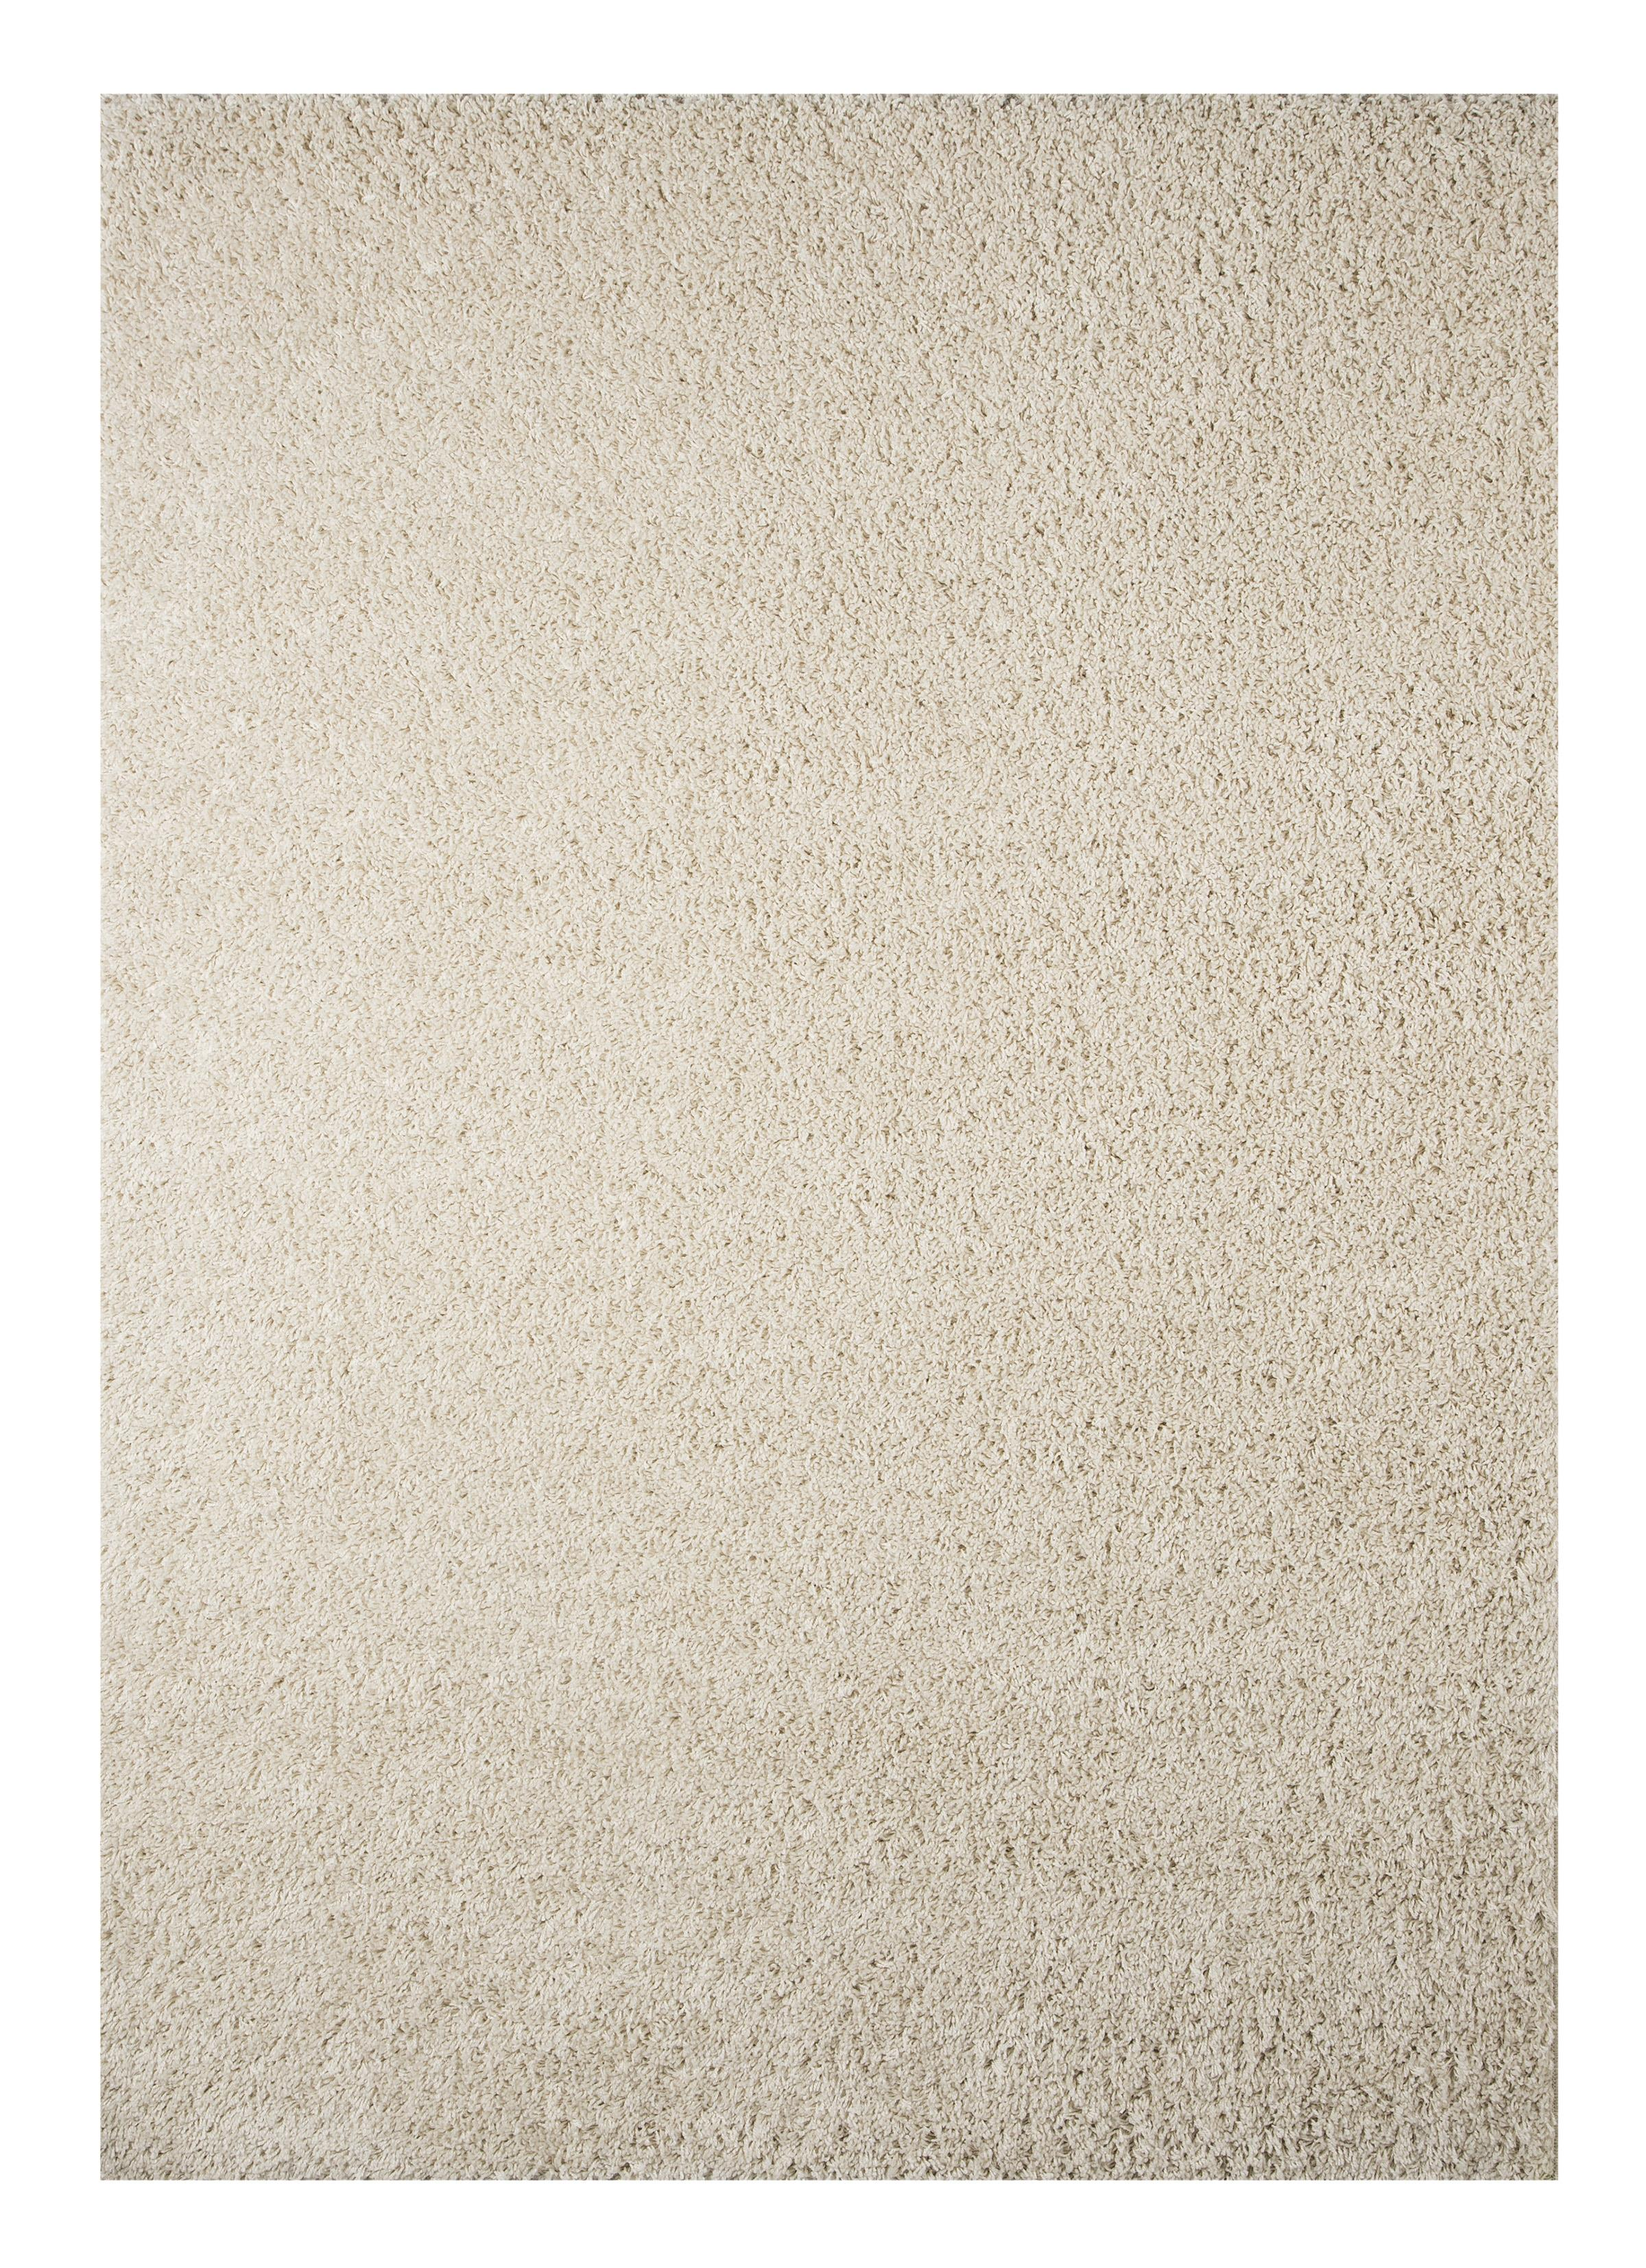 Contemporary Area Rugs Caci Snow Medium Rug by Ashley Signature Design at Rooms and Rest